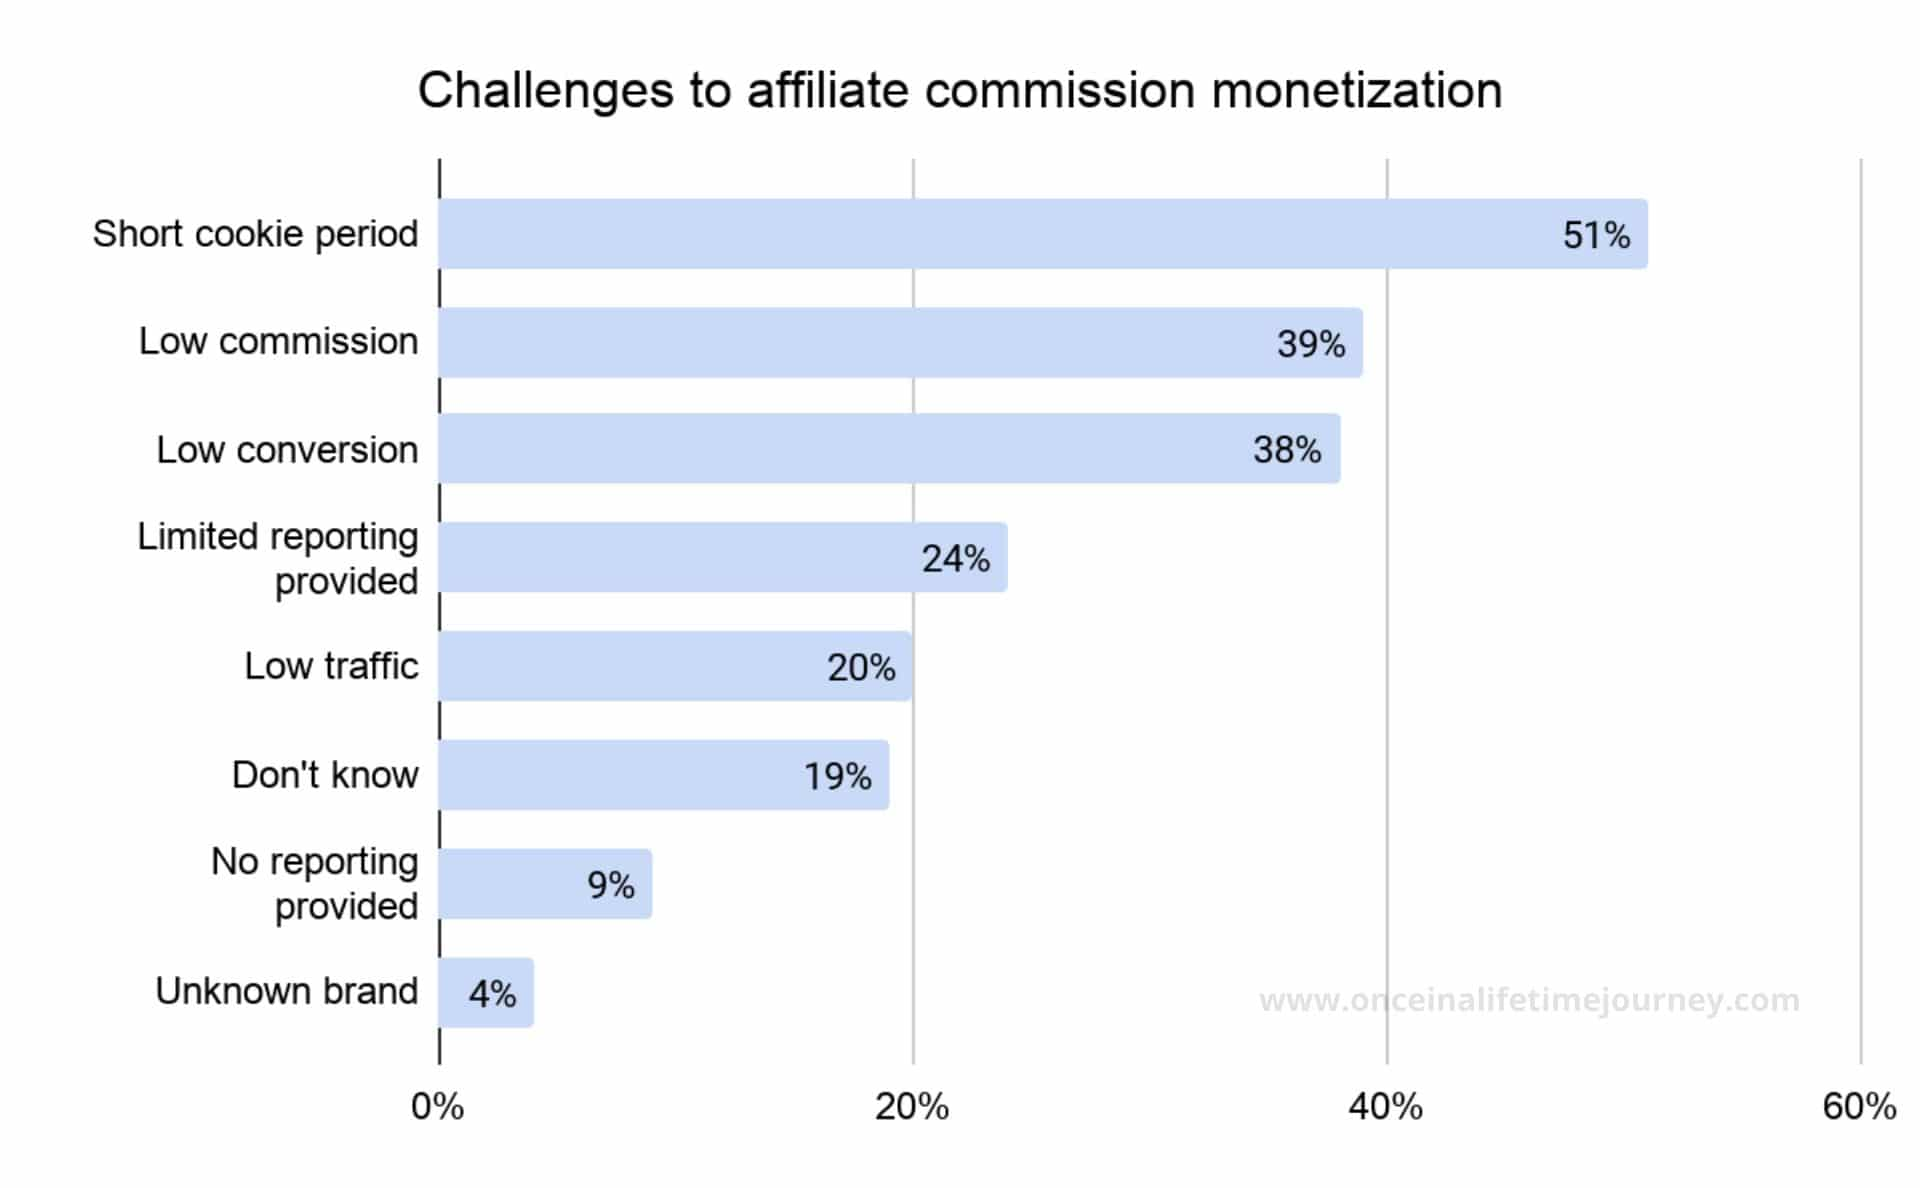 Challenges to monetization of affiliate commissions